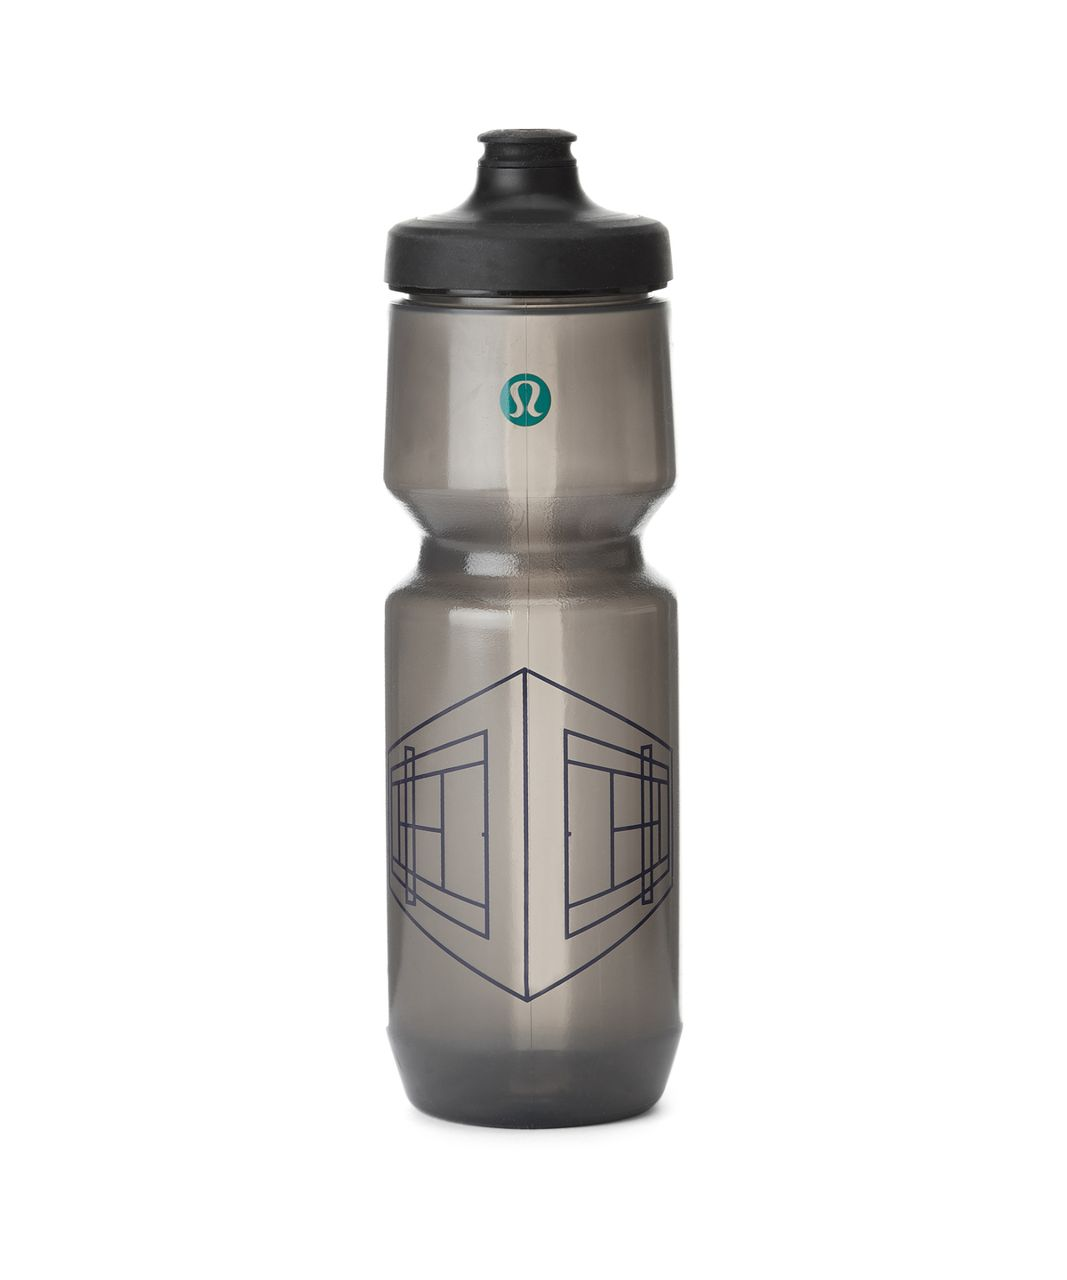 Lululemon Purist Cycling Water Bottle *26 oz - Doubles Game Harbor Blue Hunter Green